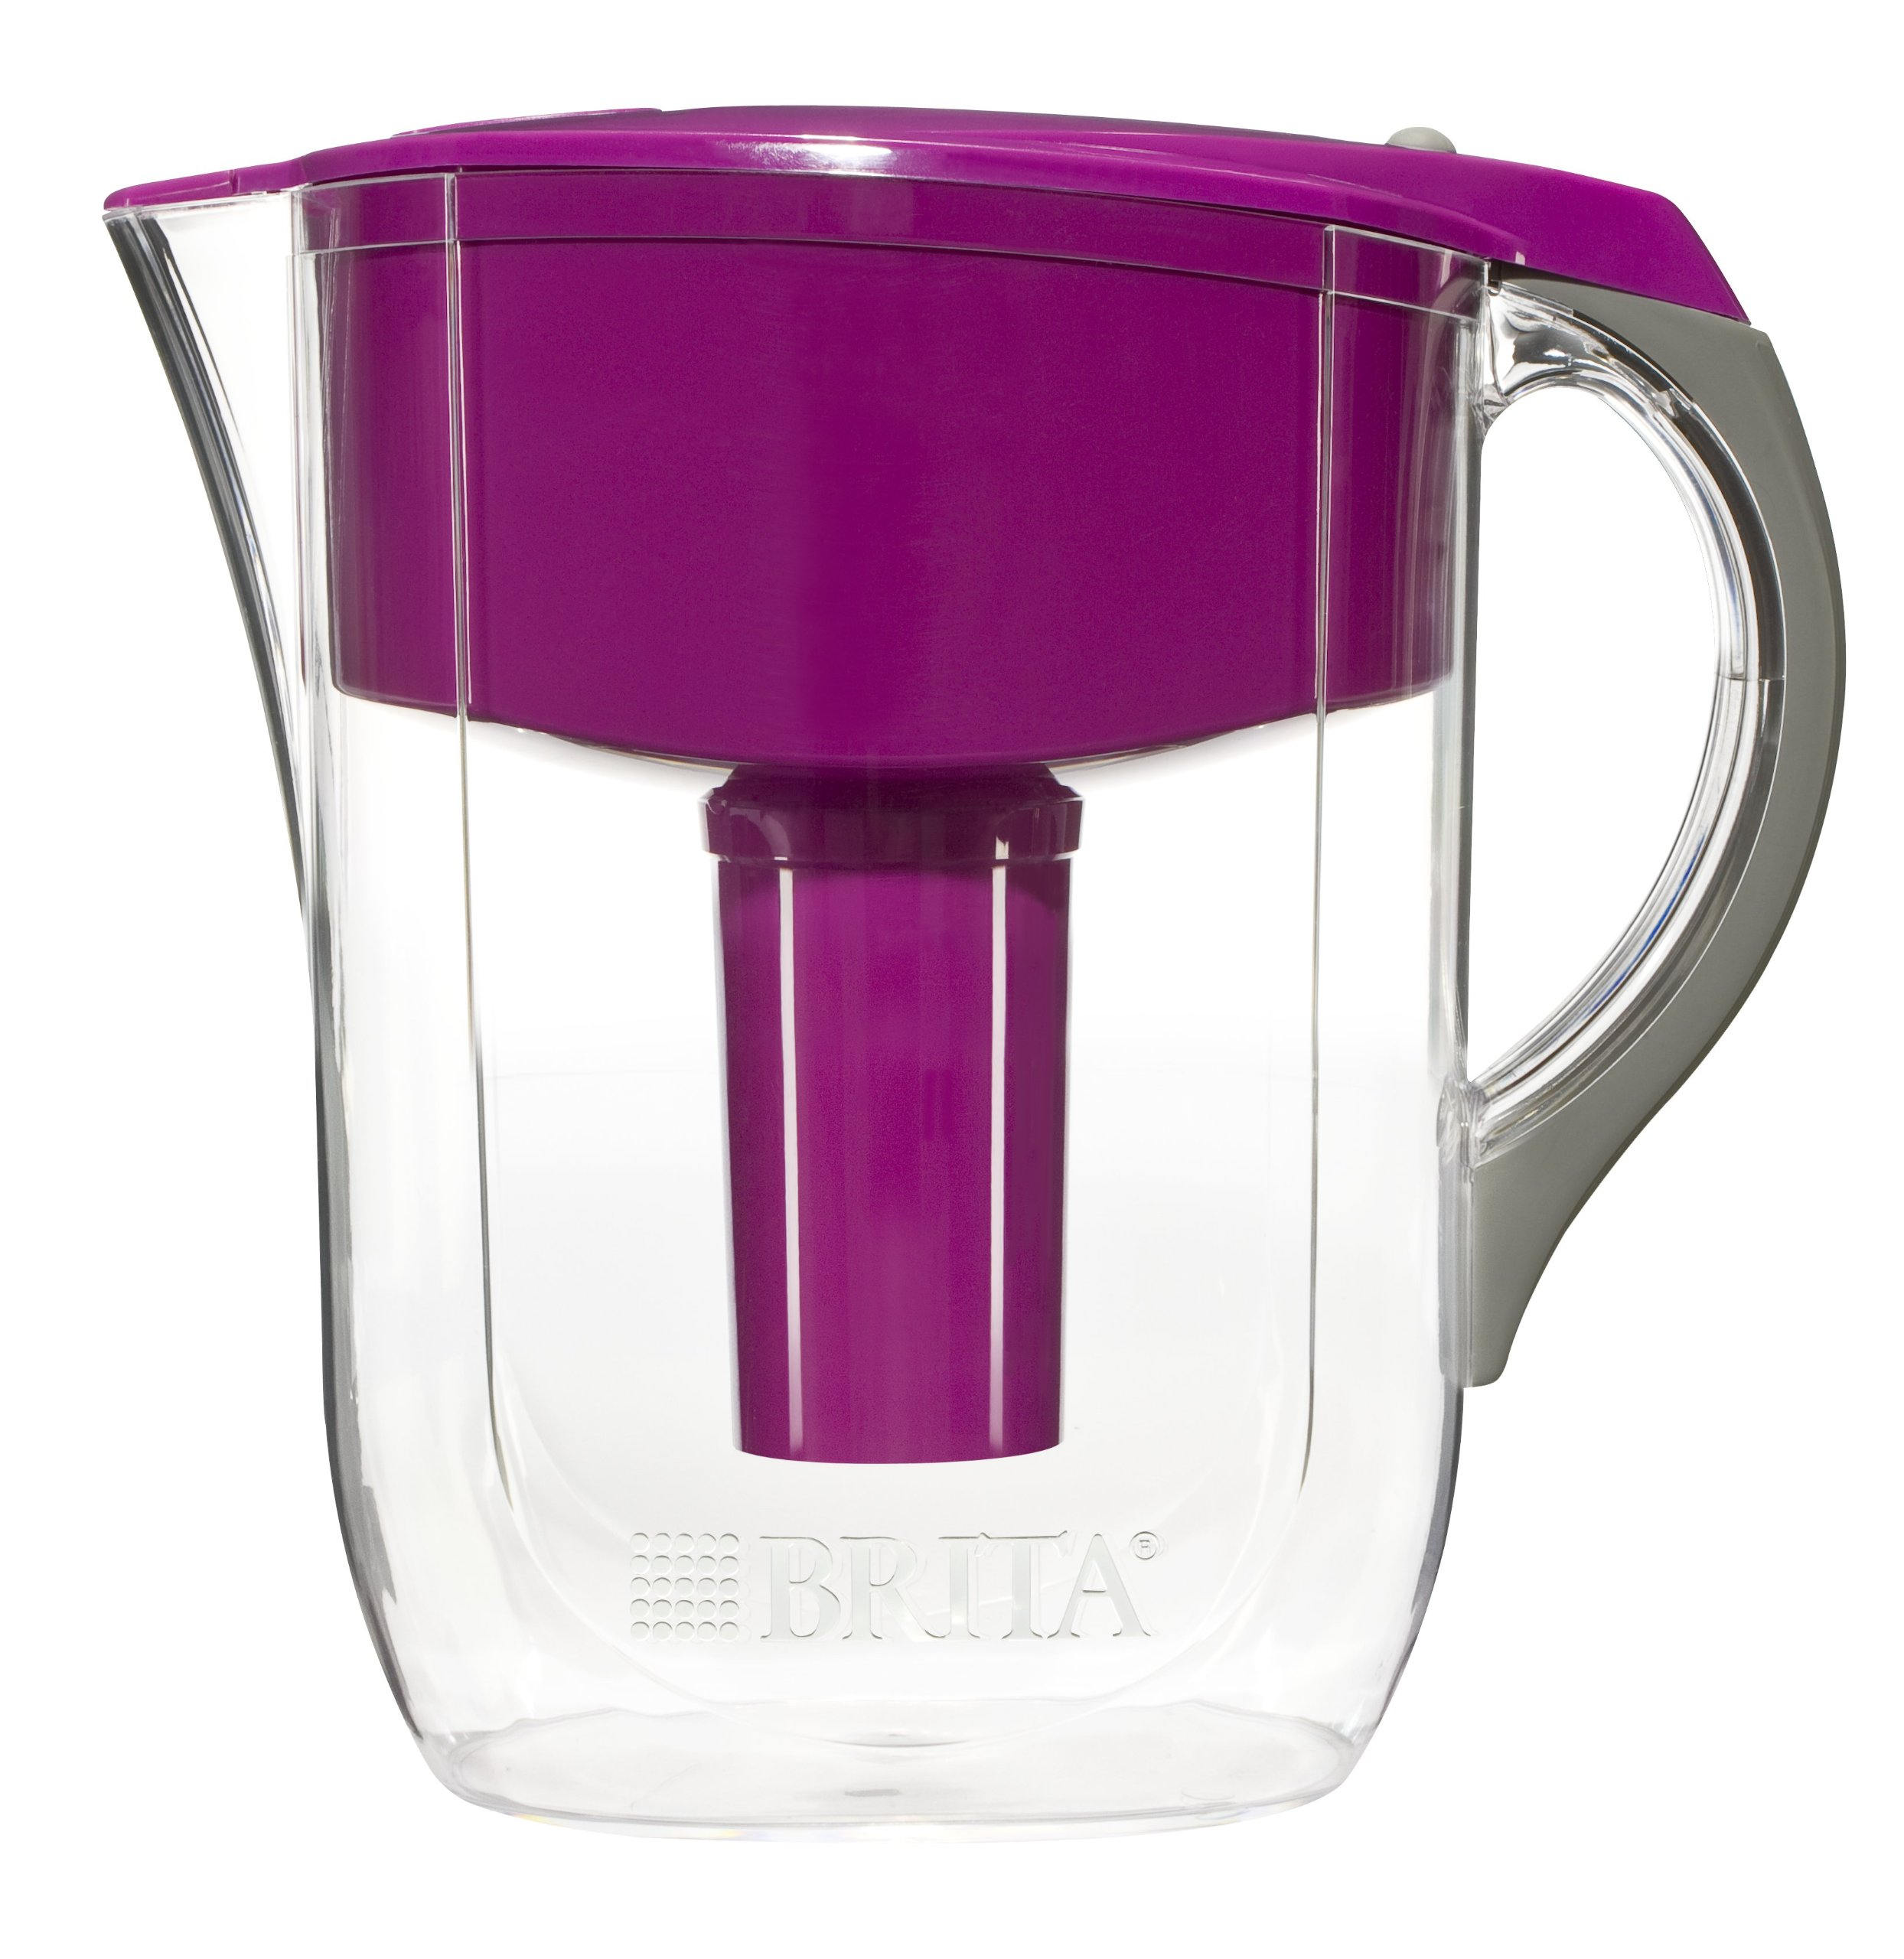 Brita Large 10 Cup Water Filter Pitcher with 1 Standard Filter, BPA Free - Grand, Violet by Brita (Image #2)